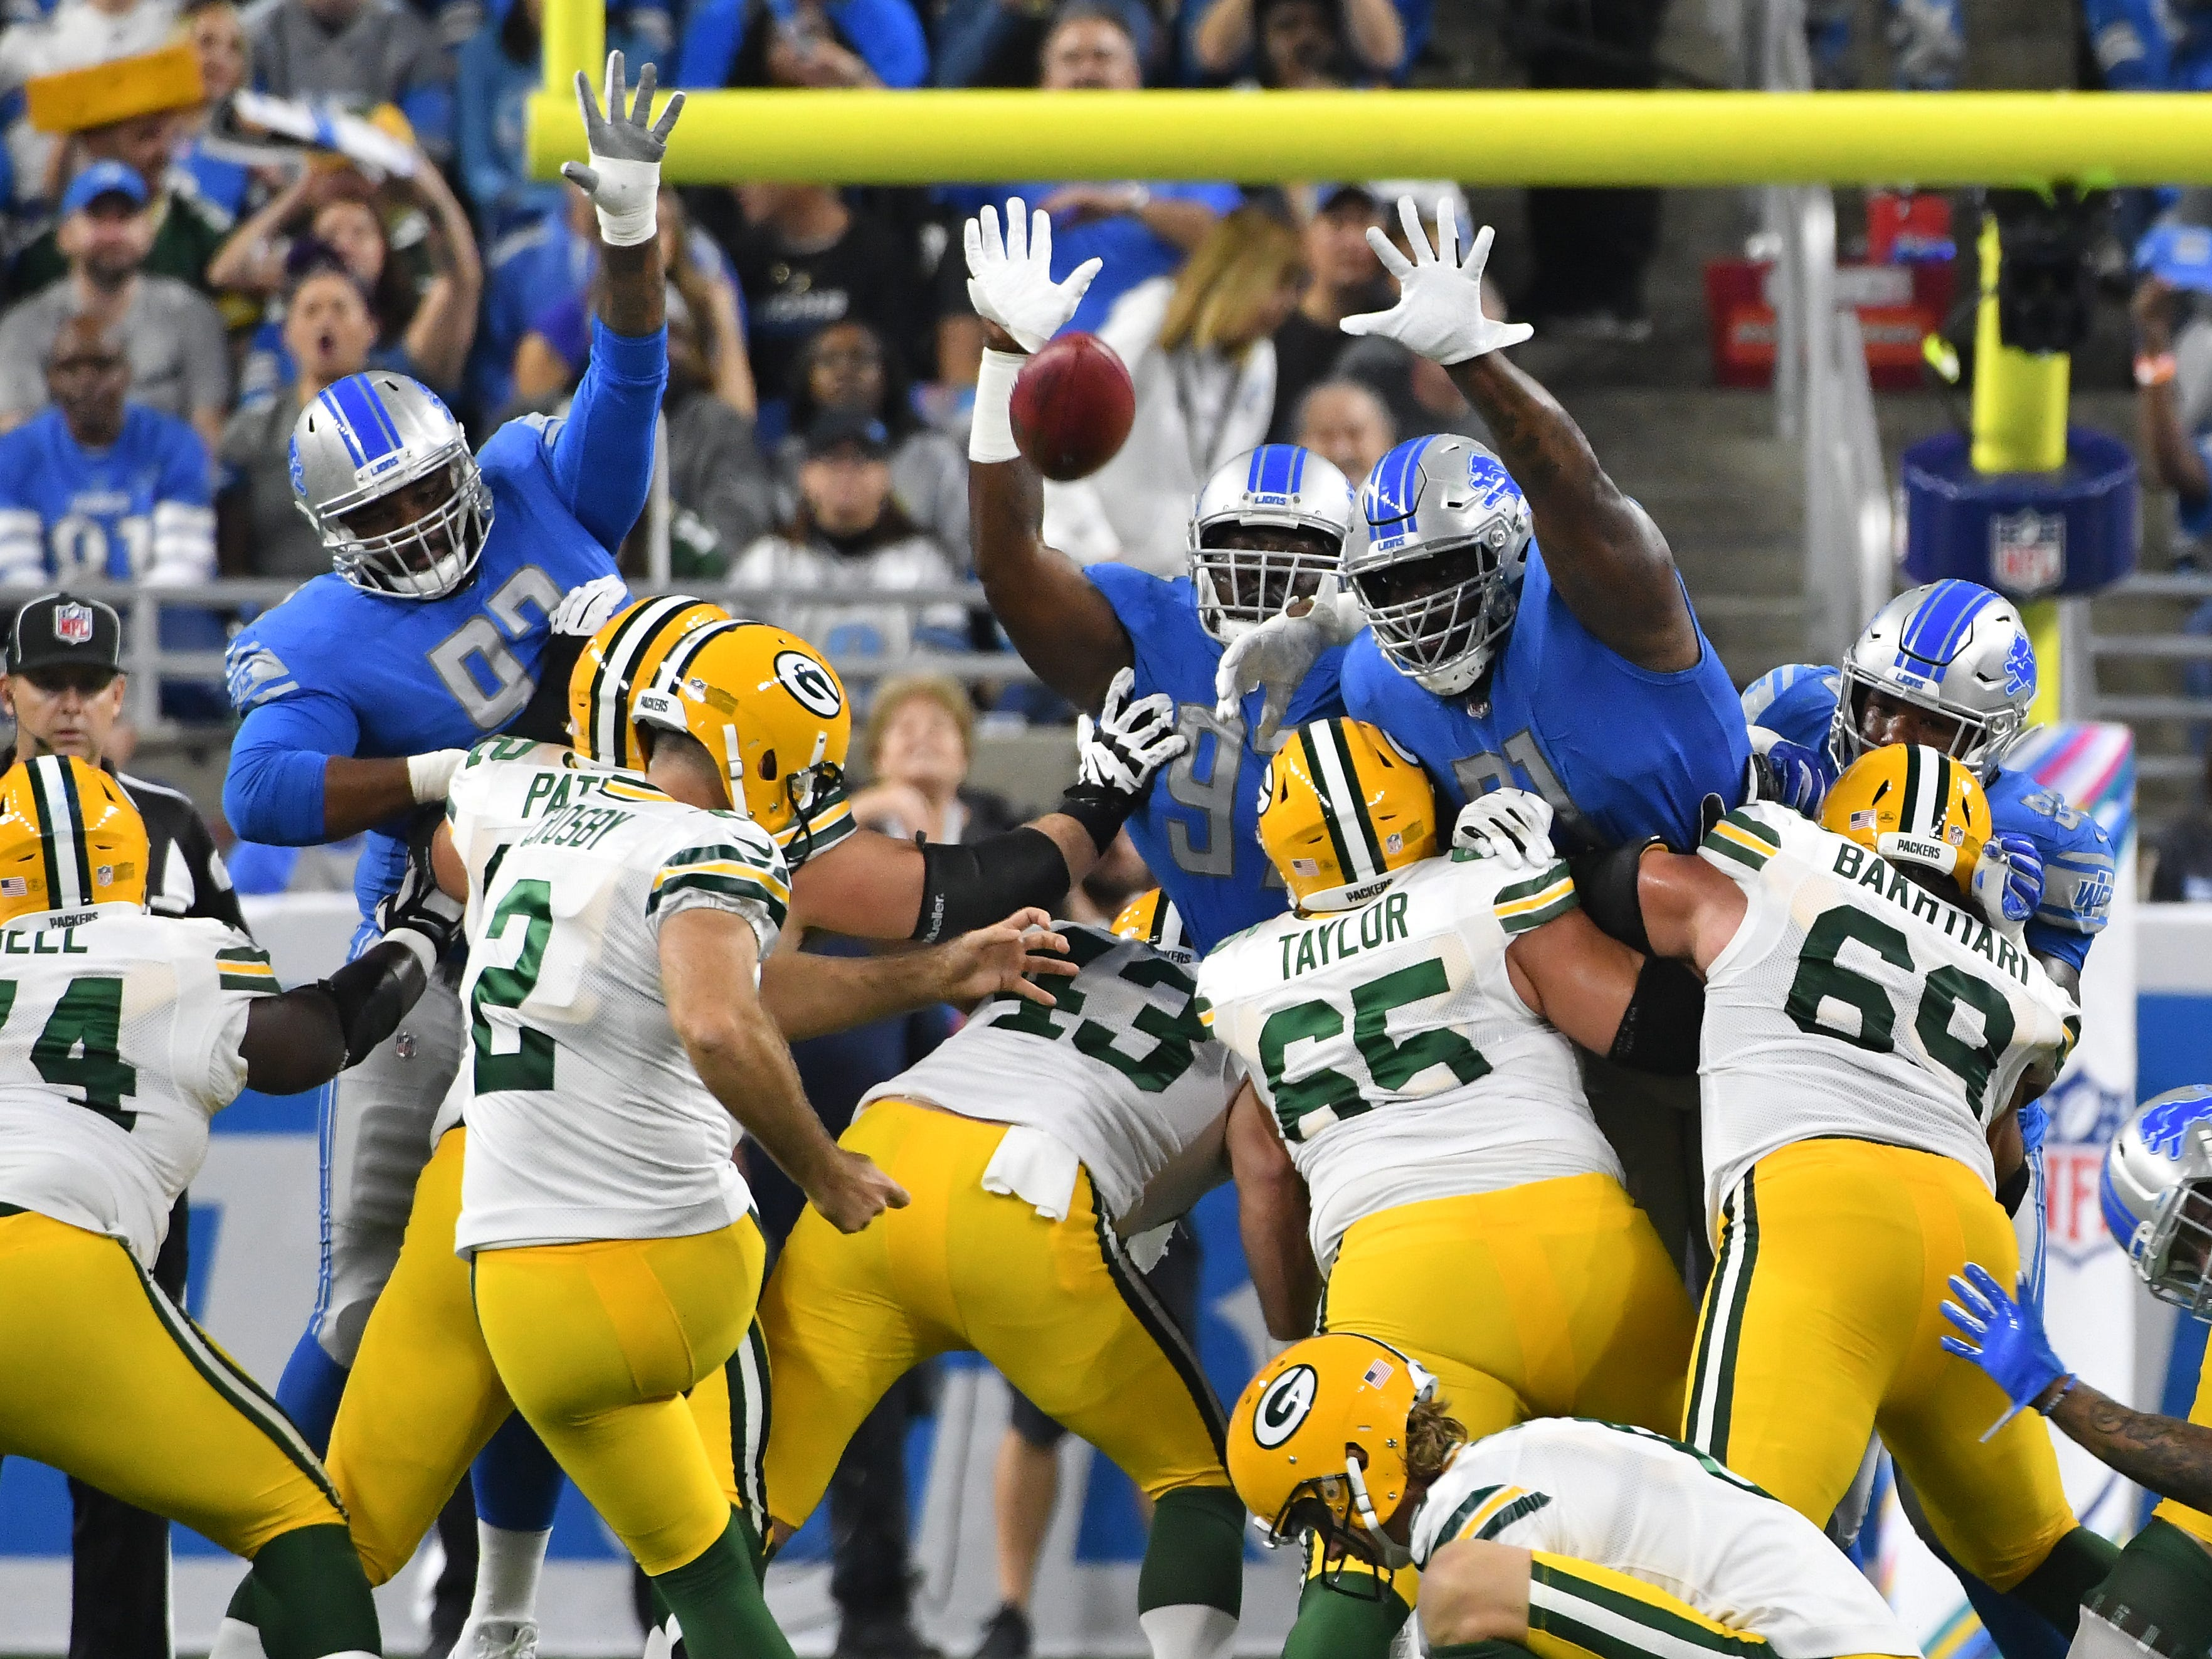 Packers kicker Mason Crosby misses a field goal attempt, one of four in the game, in the first quarter.